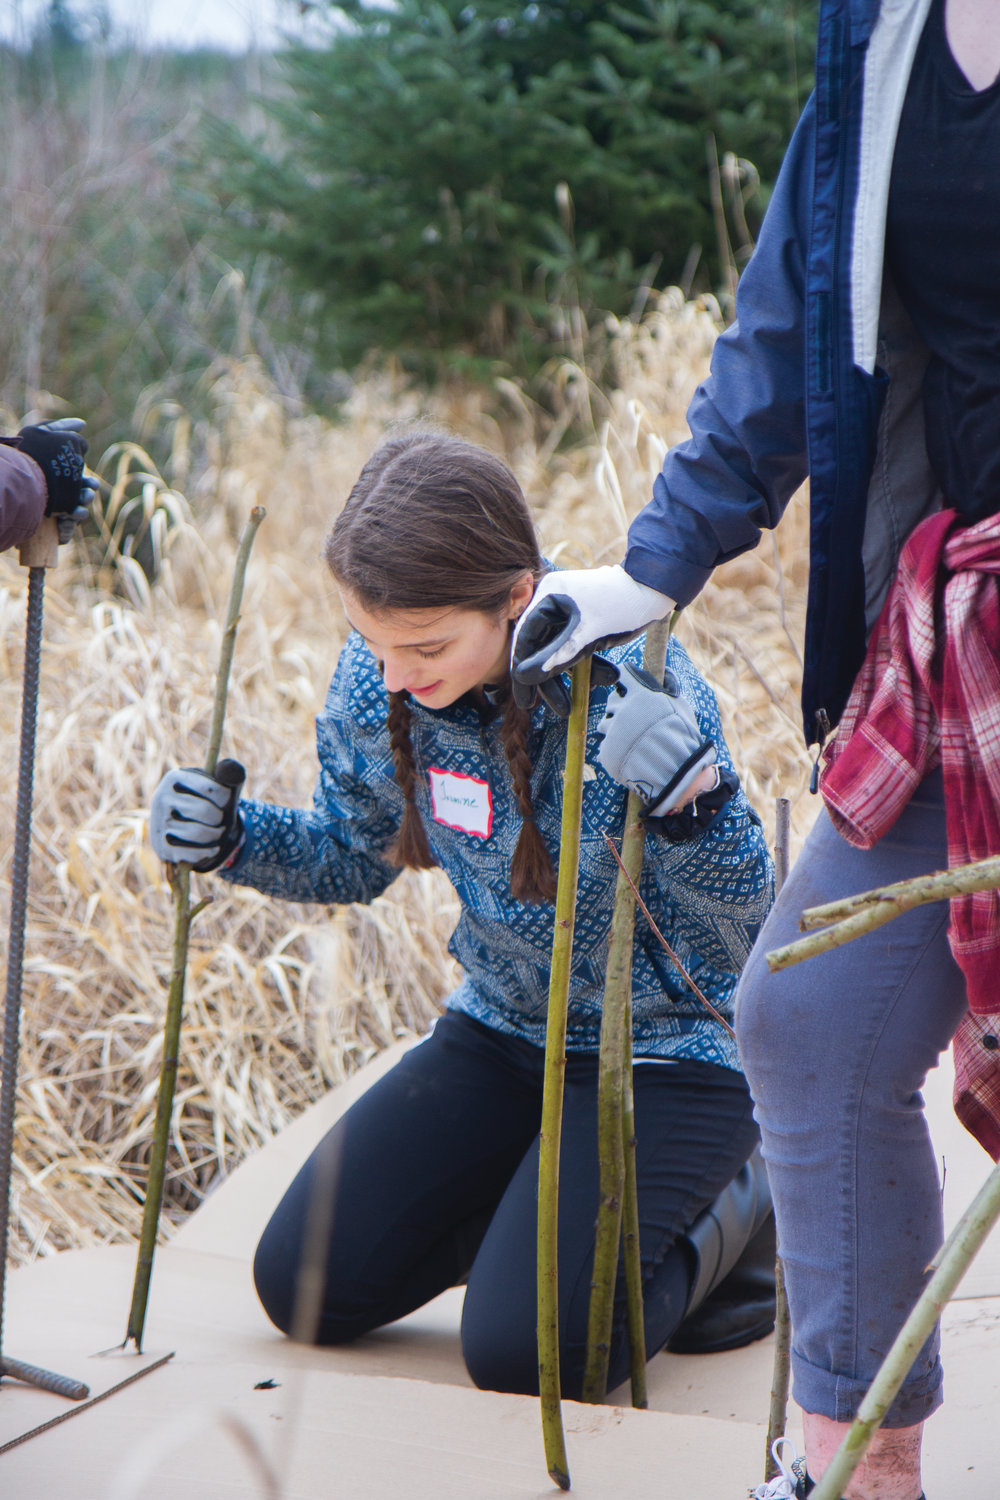 Jasmine Yearian instructs her fellow tree-planters on spacing willow cuttings.